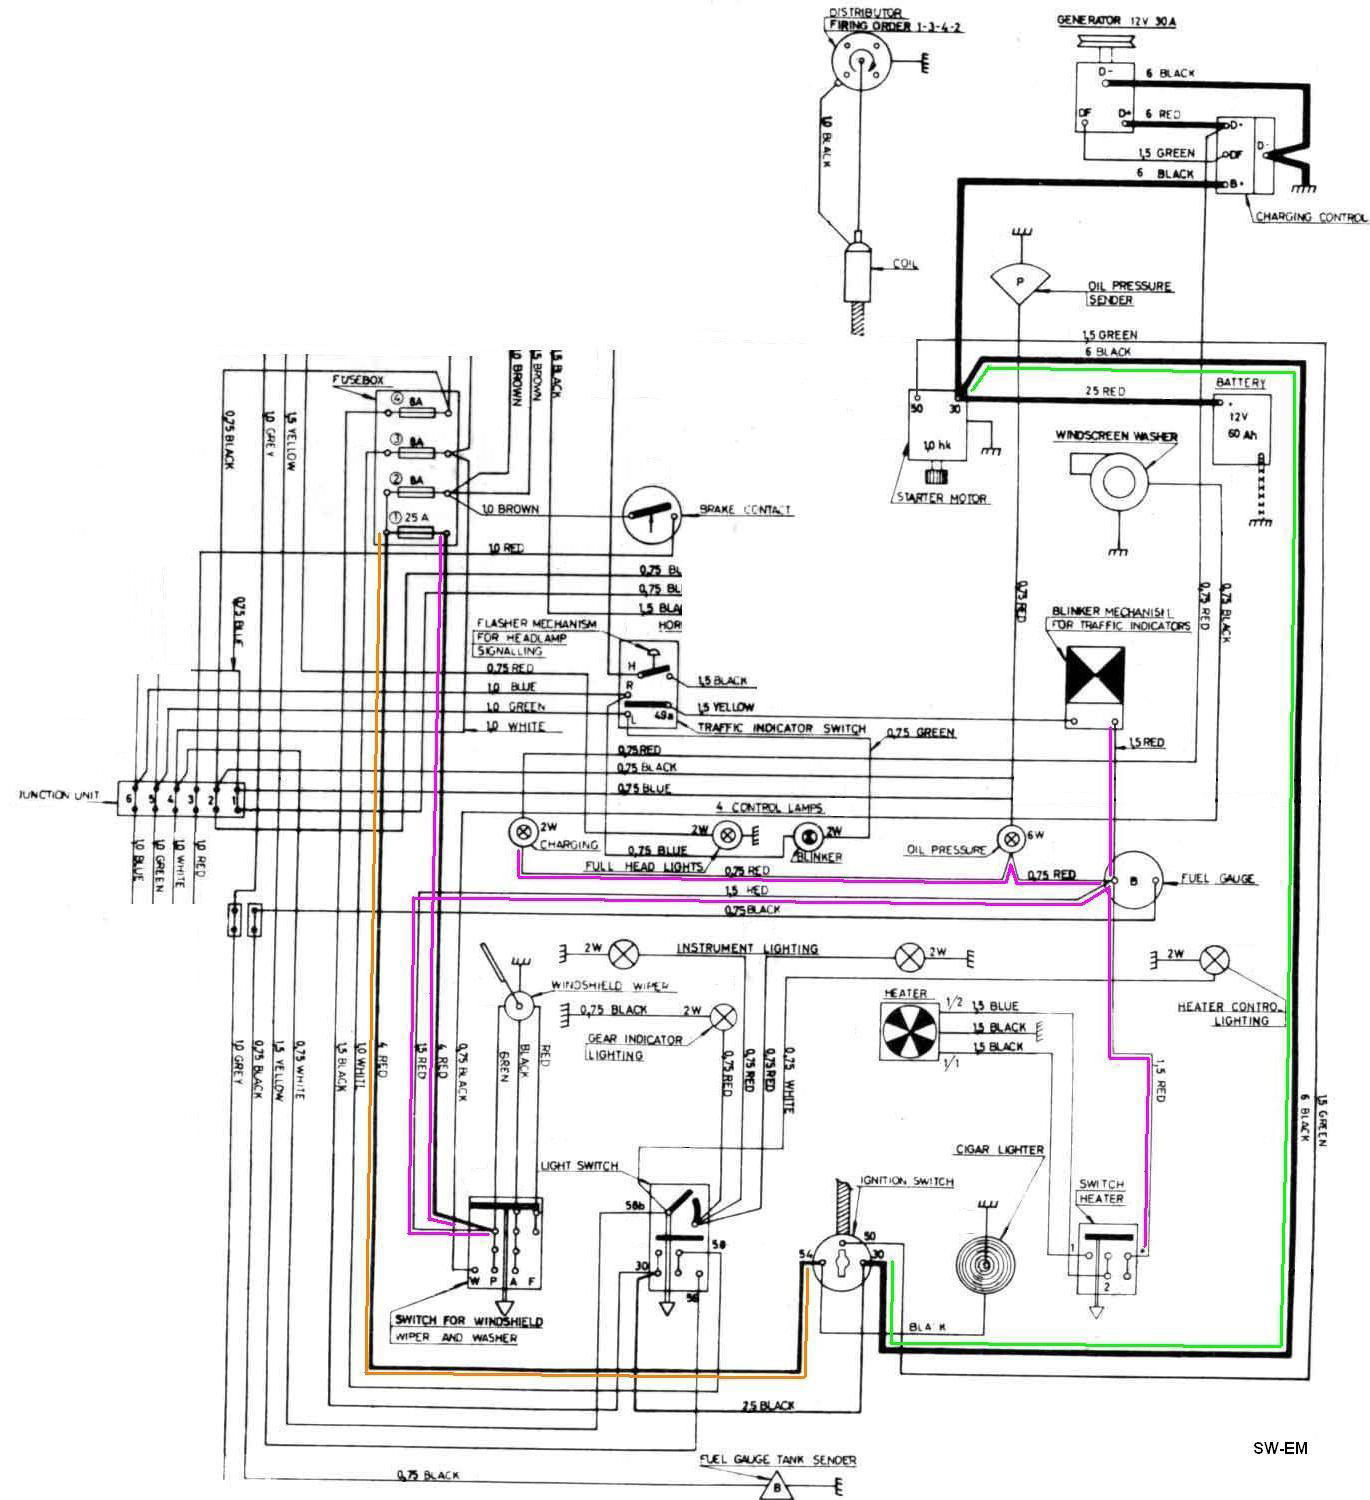 IGN SW wiring diag 122 markup 1800 ignition wiring swedish vs british design volvo penta wiring harness diagram at edmiracle.co